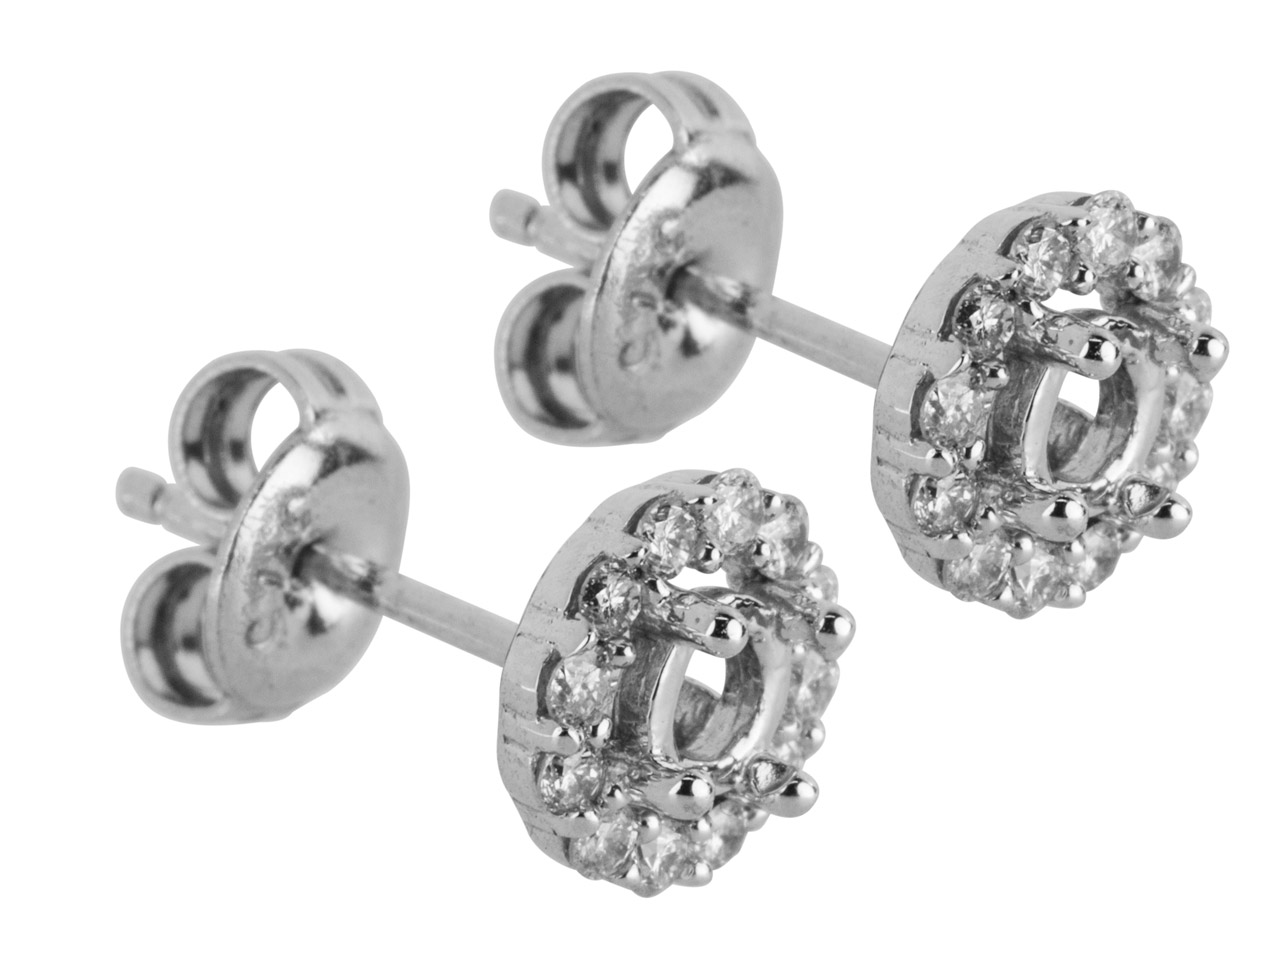 9ct White Semi Set Earring Mount   Hallmarked 24 Round Total 0.24ct   Centre To Accommodate 3.0mm        Pack of 2